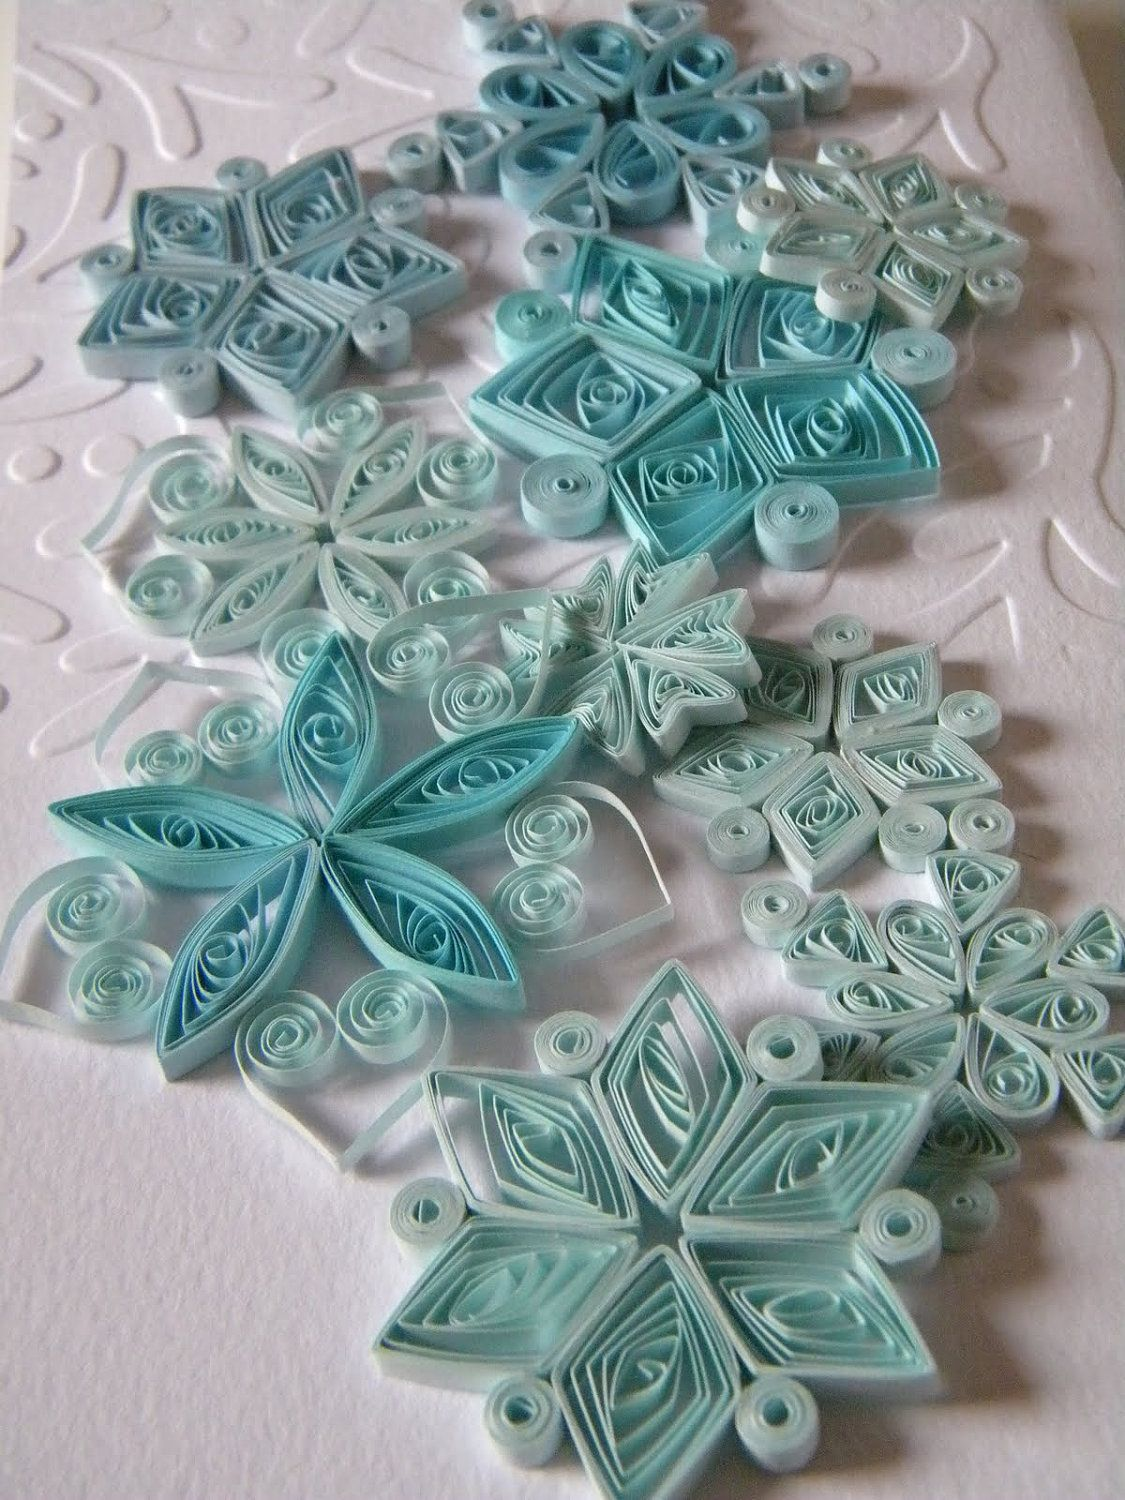 Paper wedding decoration ideas  Paper quilling snowflakes  Paper ornaments  Winter wedding